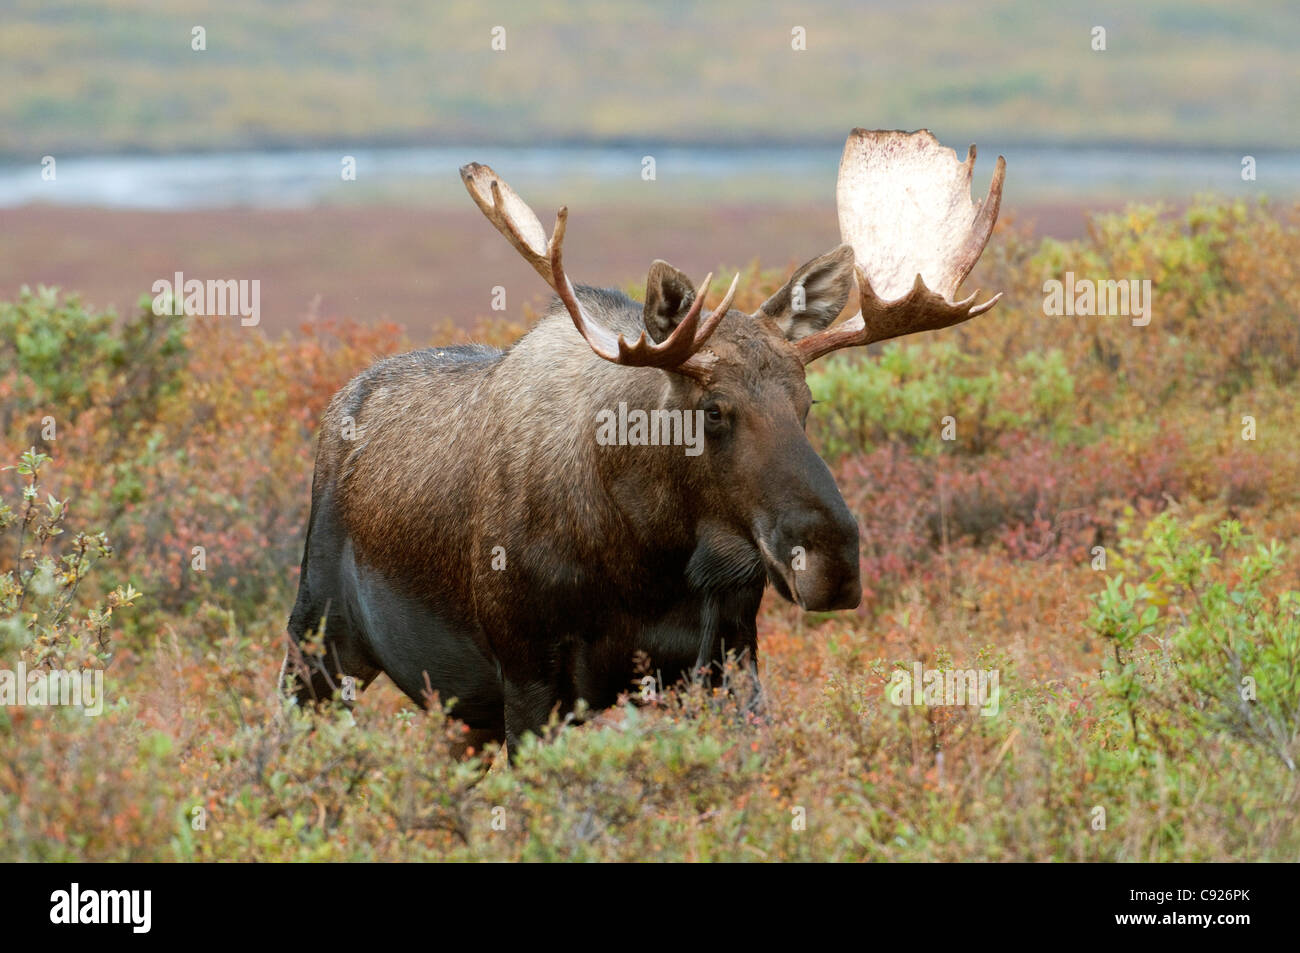 Young adult bull moose emerges from Fall foliage with McKinley River in background, Denali National Park, Alaska - Stock Image